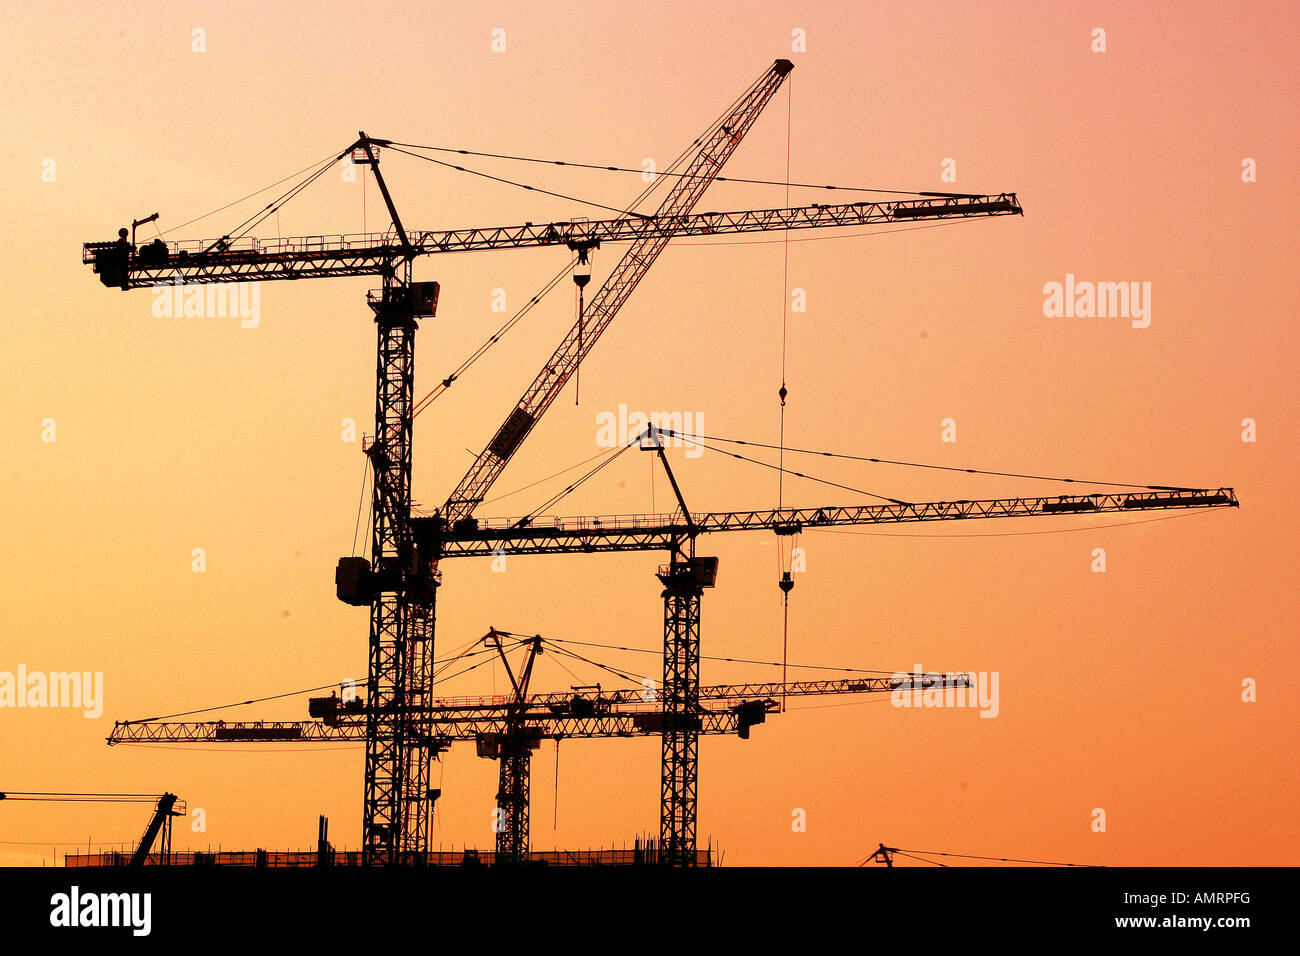 High cranes and construction building work in the sunset over Macau - Stock Image